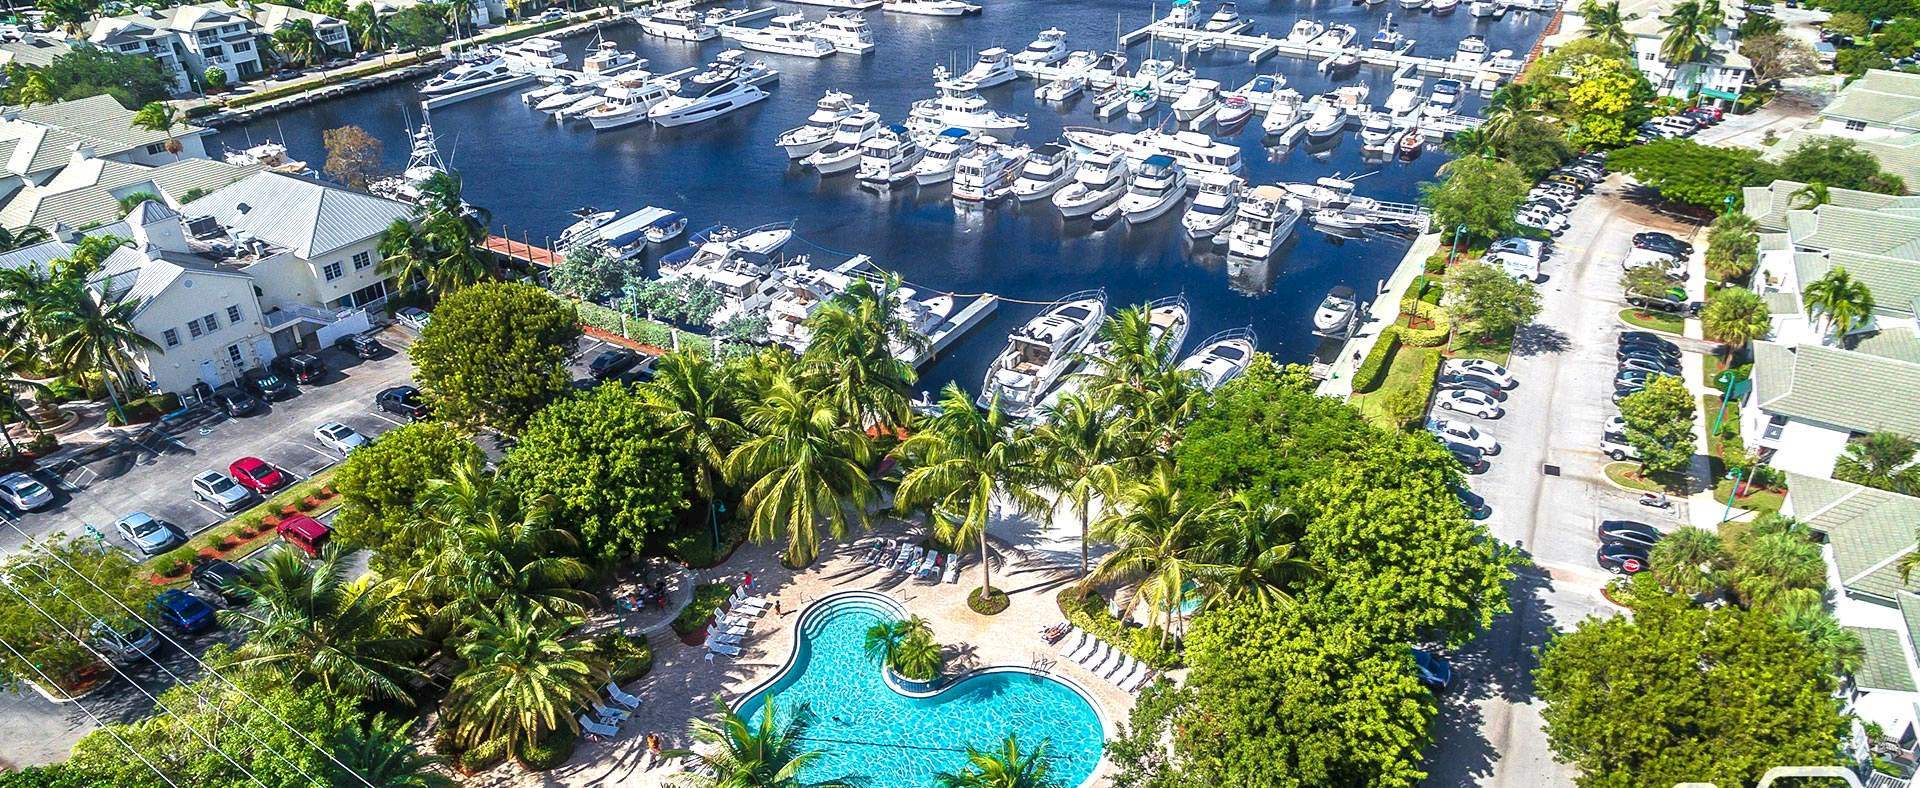 Location of TRYP by Wyndham Maritime Fort Lauderdale, Florida